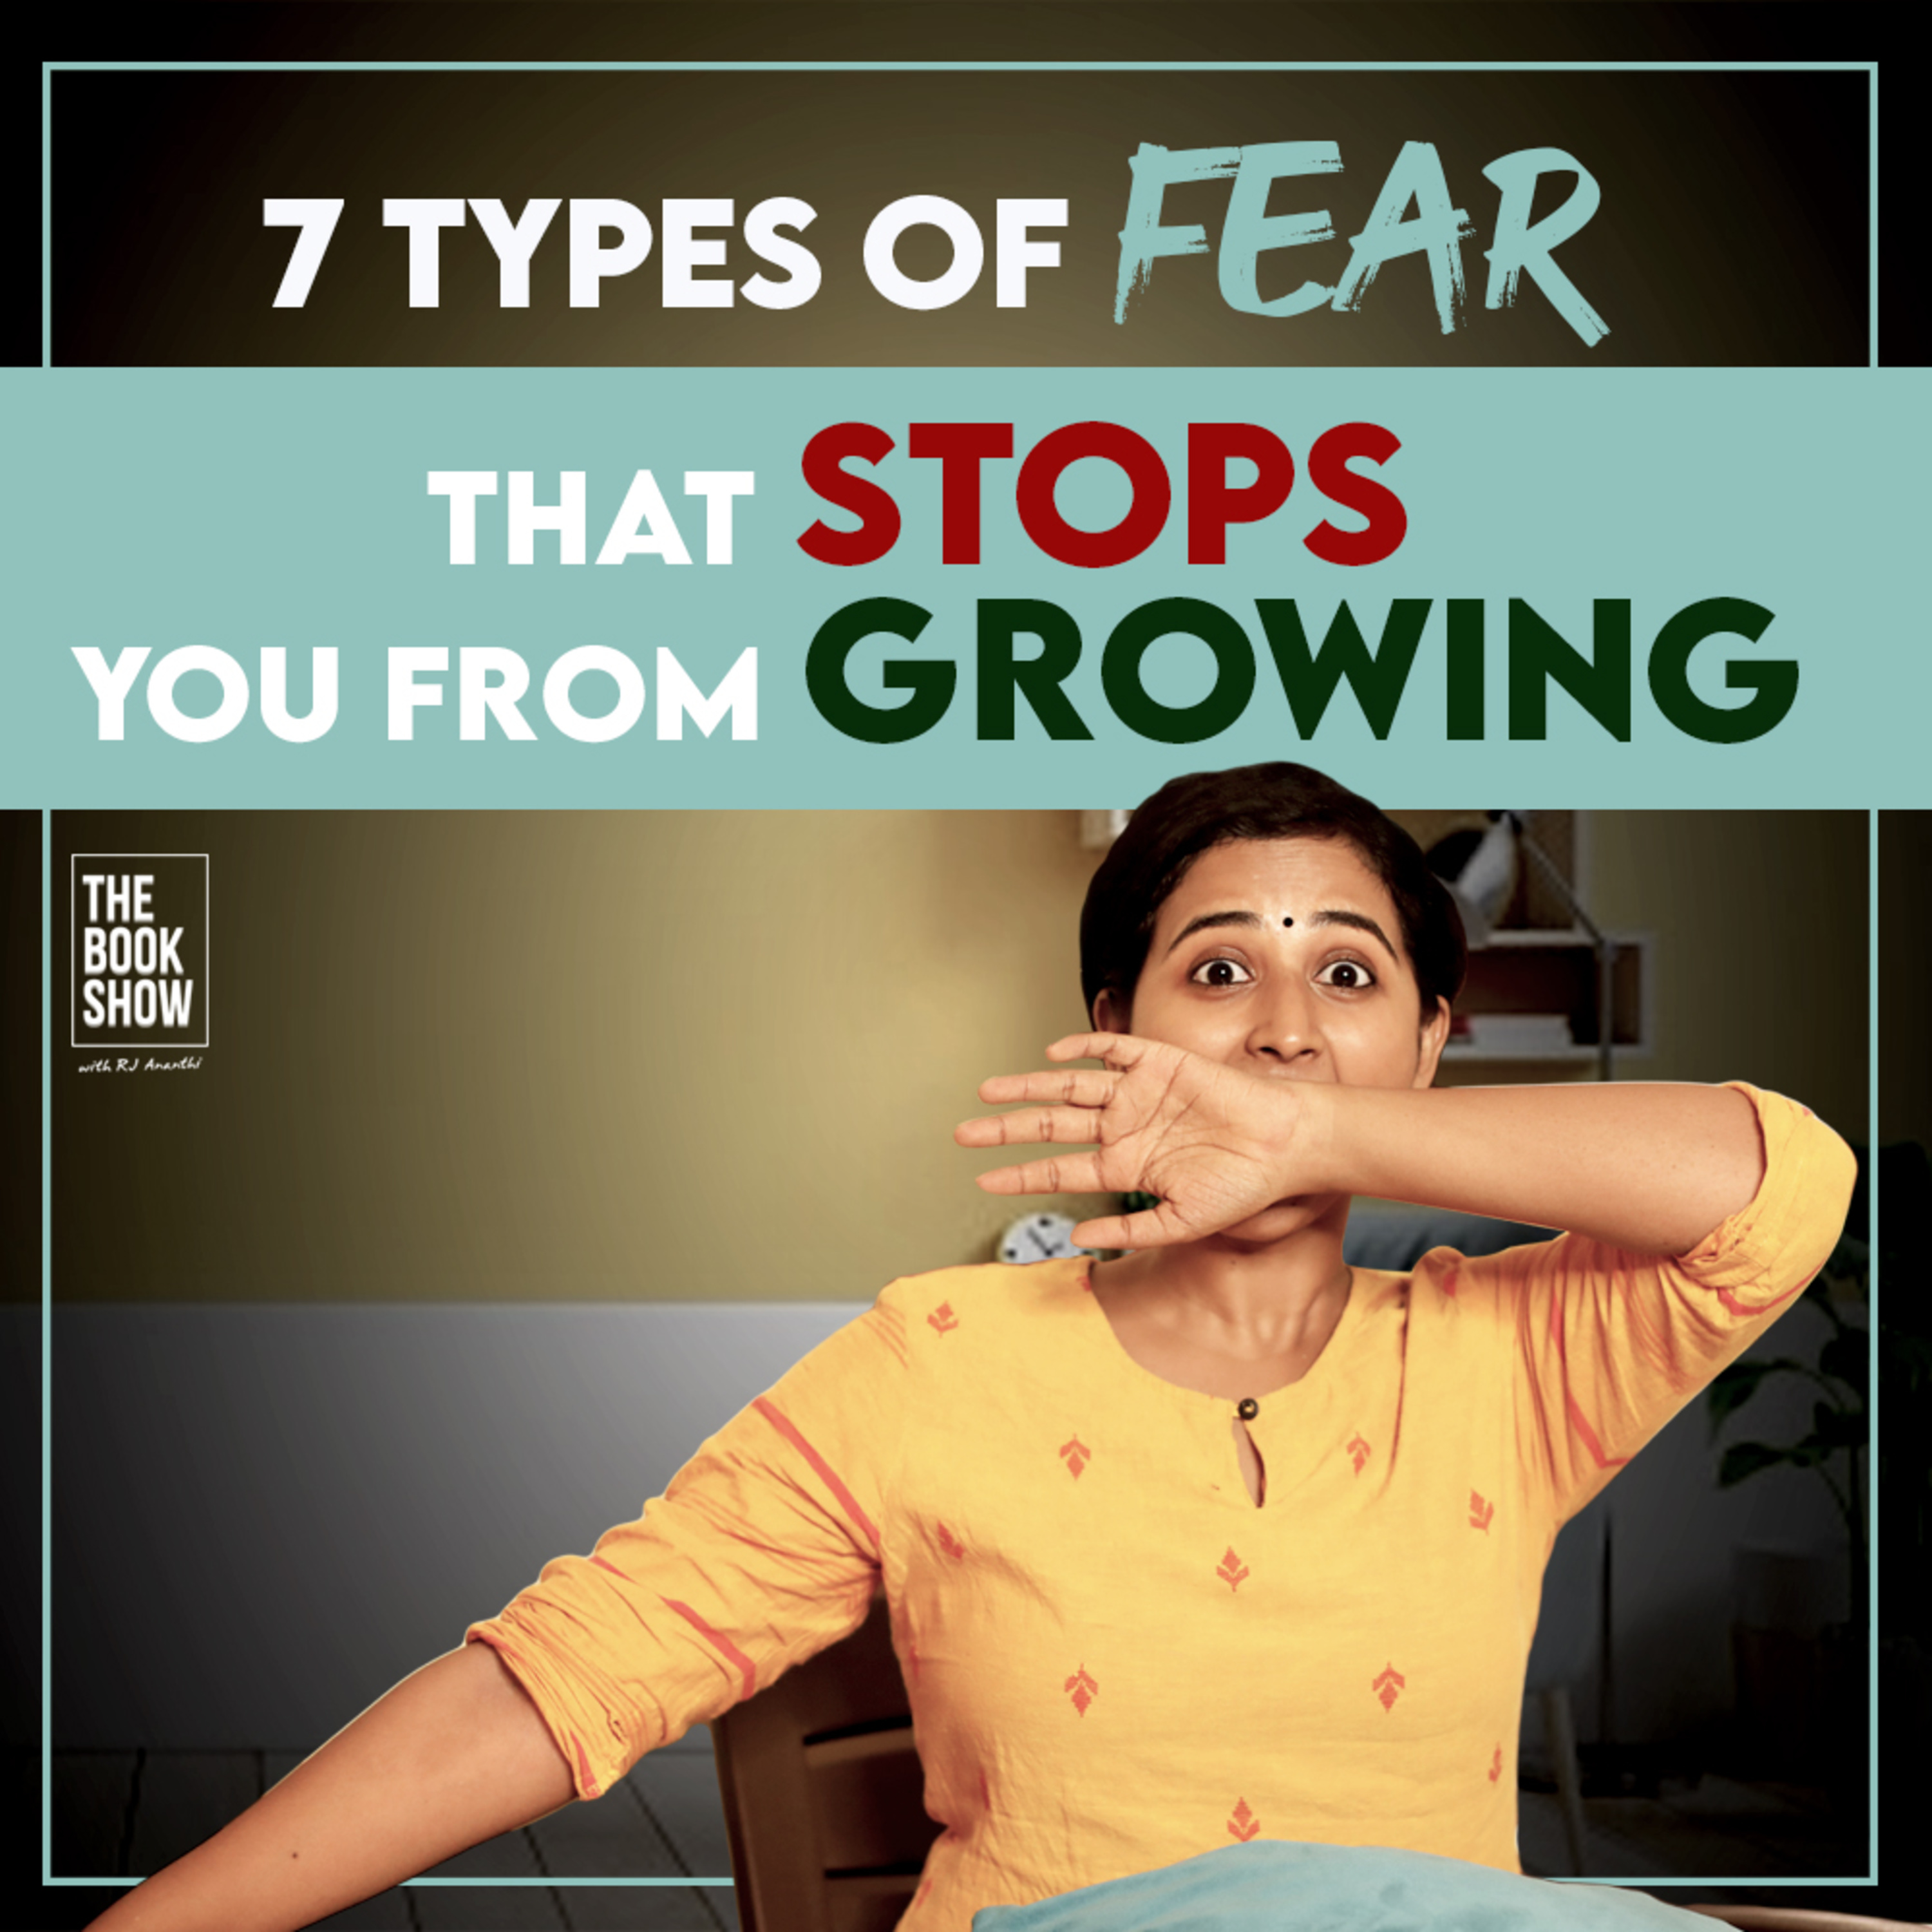 7 Types of Fear That Stops You From Growing   The Book Show ft. RJ Ananthi   Book Mark